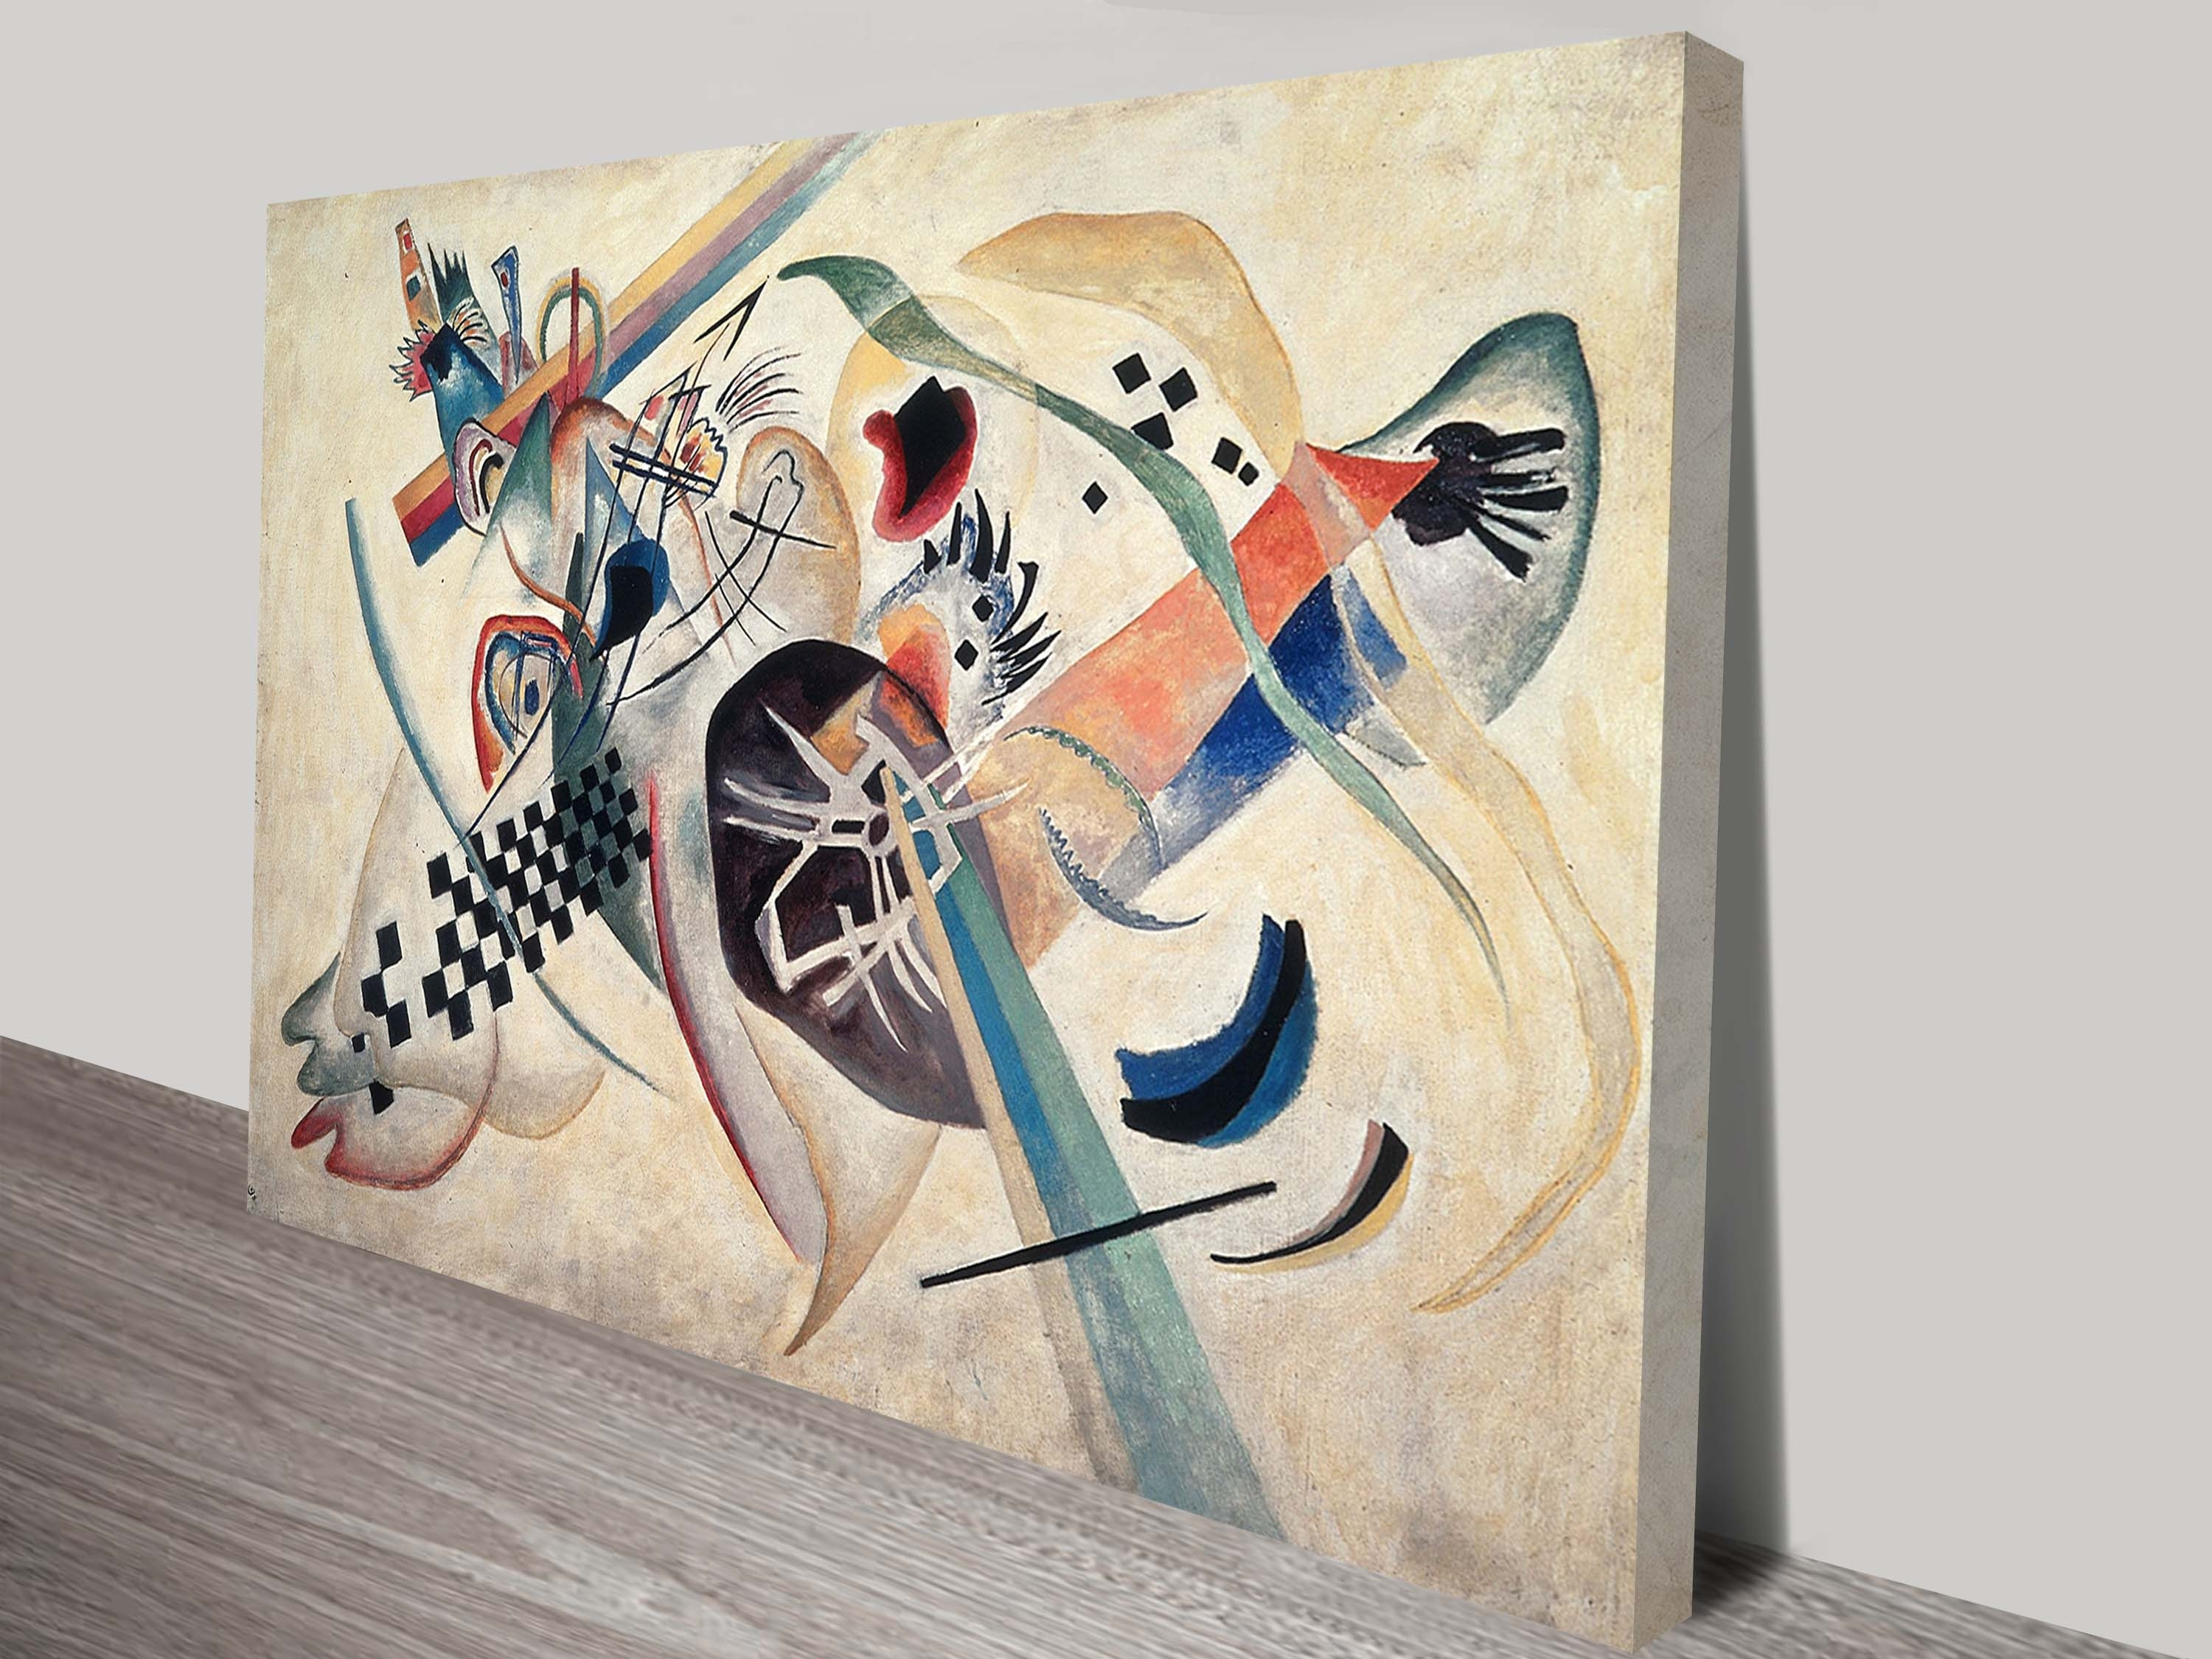 Wassily Kandinsky Wall Art Print On Canvas Intended For Most Up To Date Melbourne Abstract Wall Art (View 20 of 20)